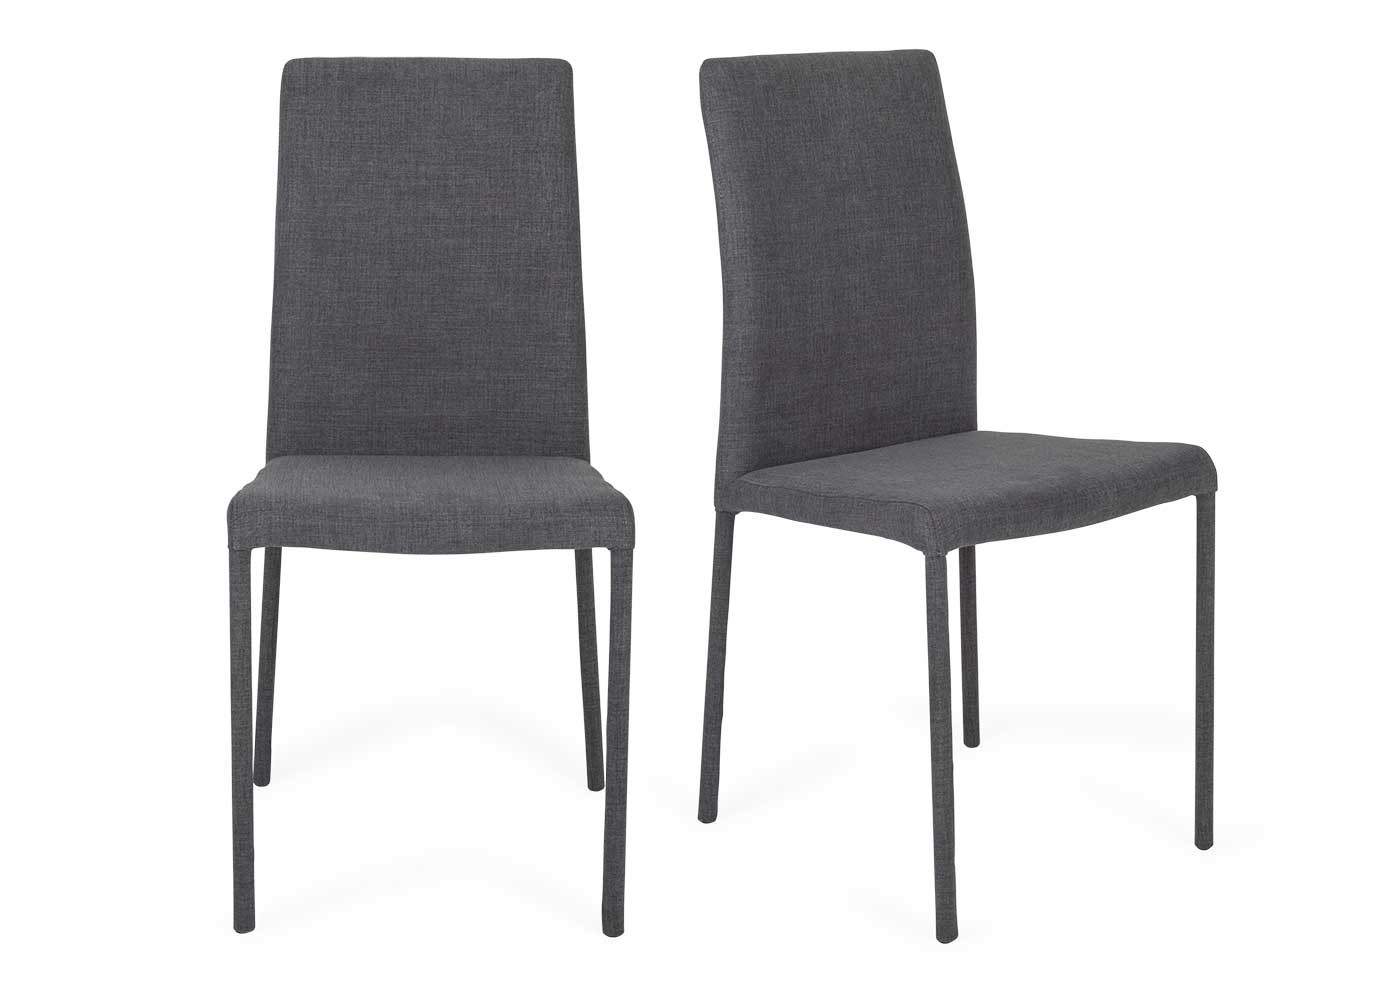 Bronte Pair Of Dining Chairs Pertaining To Latest Moda Grey Side Chairs (#5 of 20)